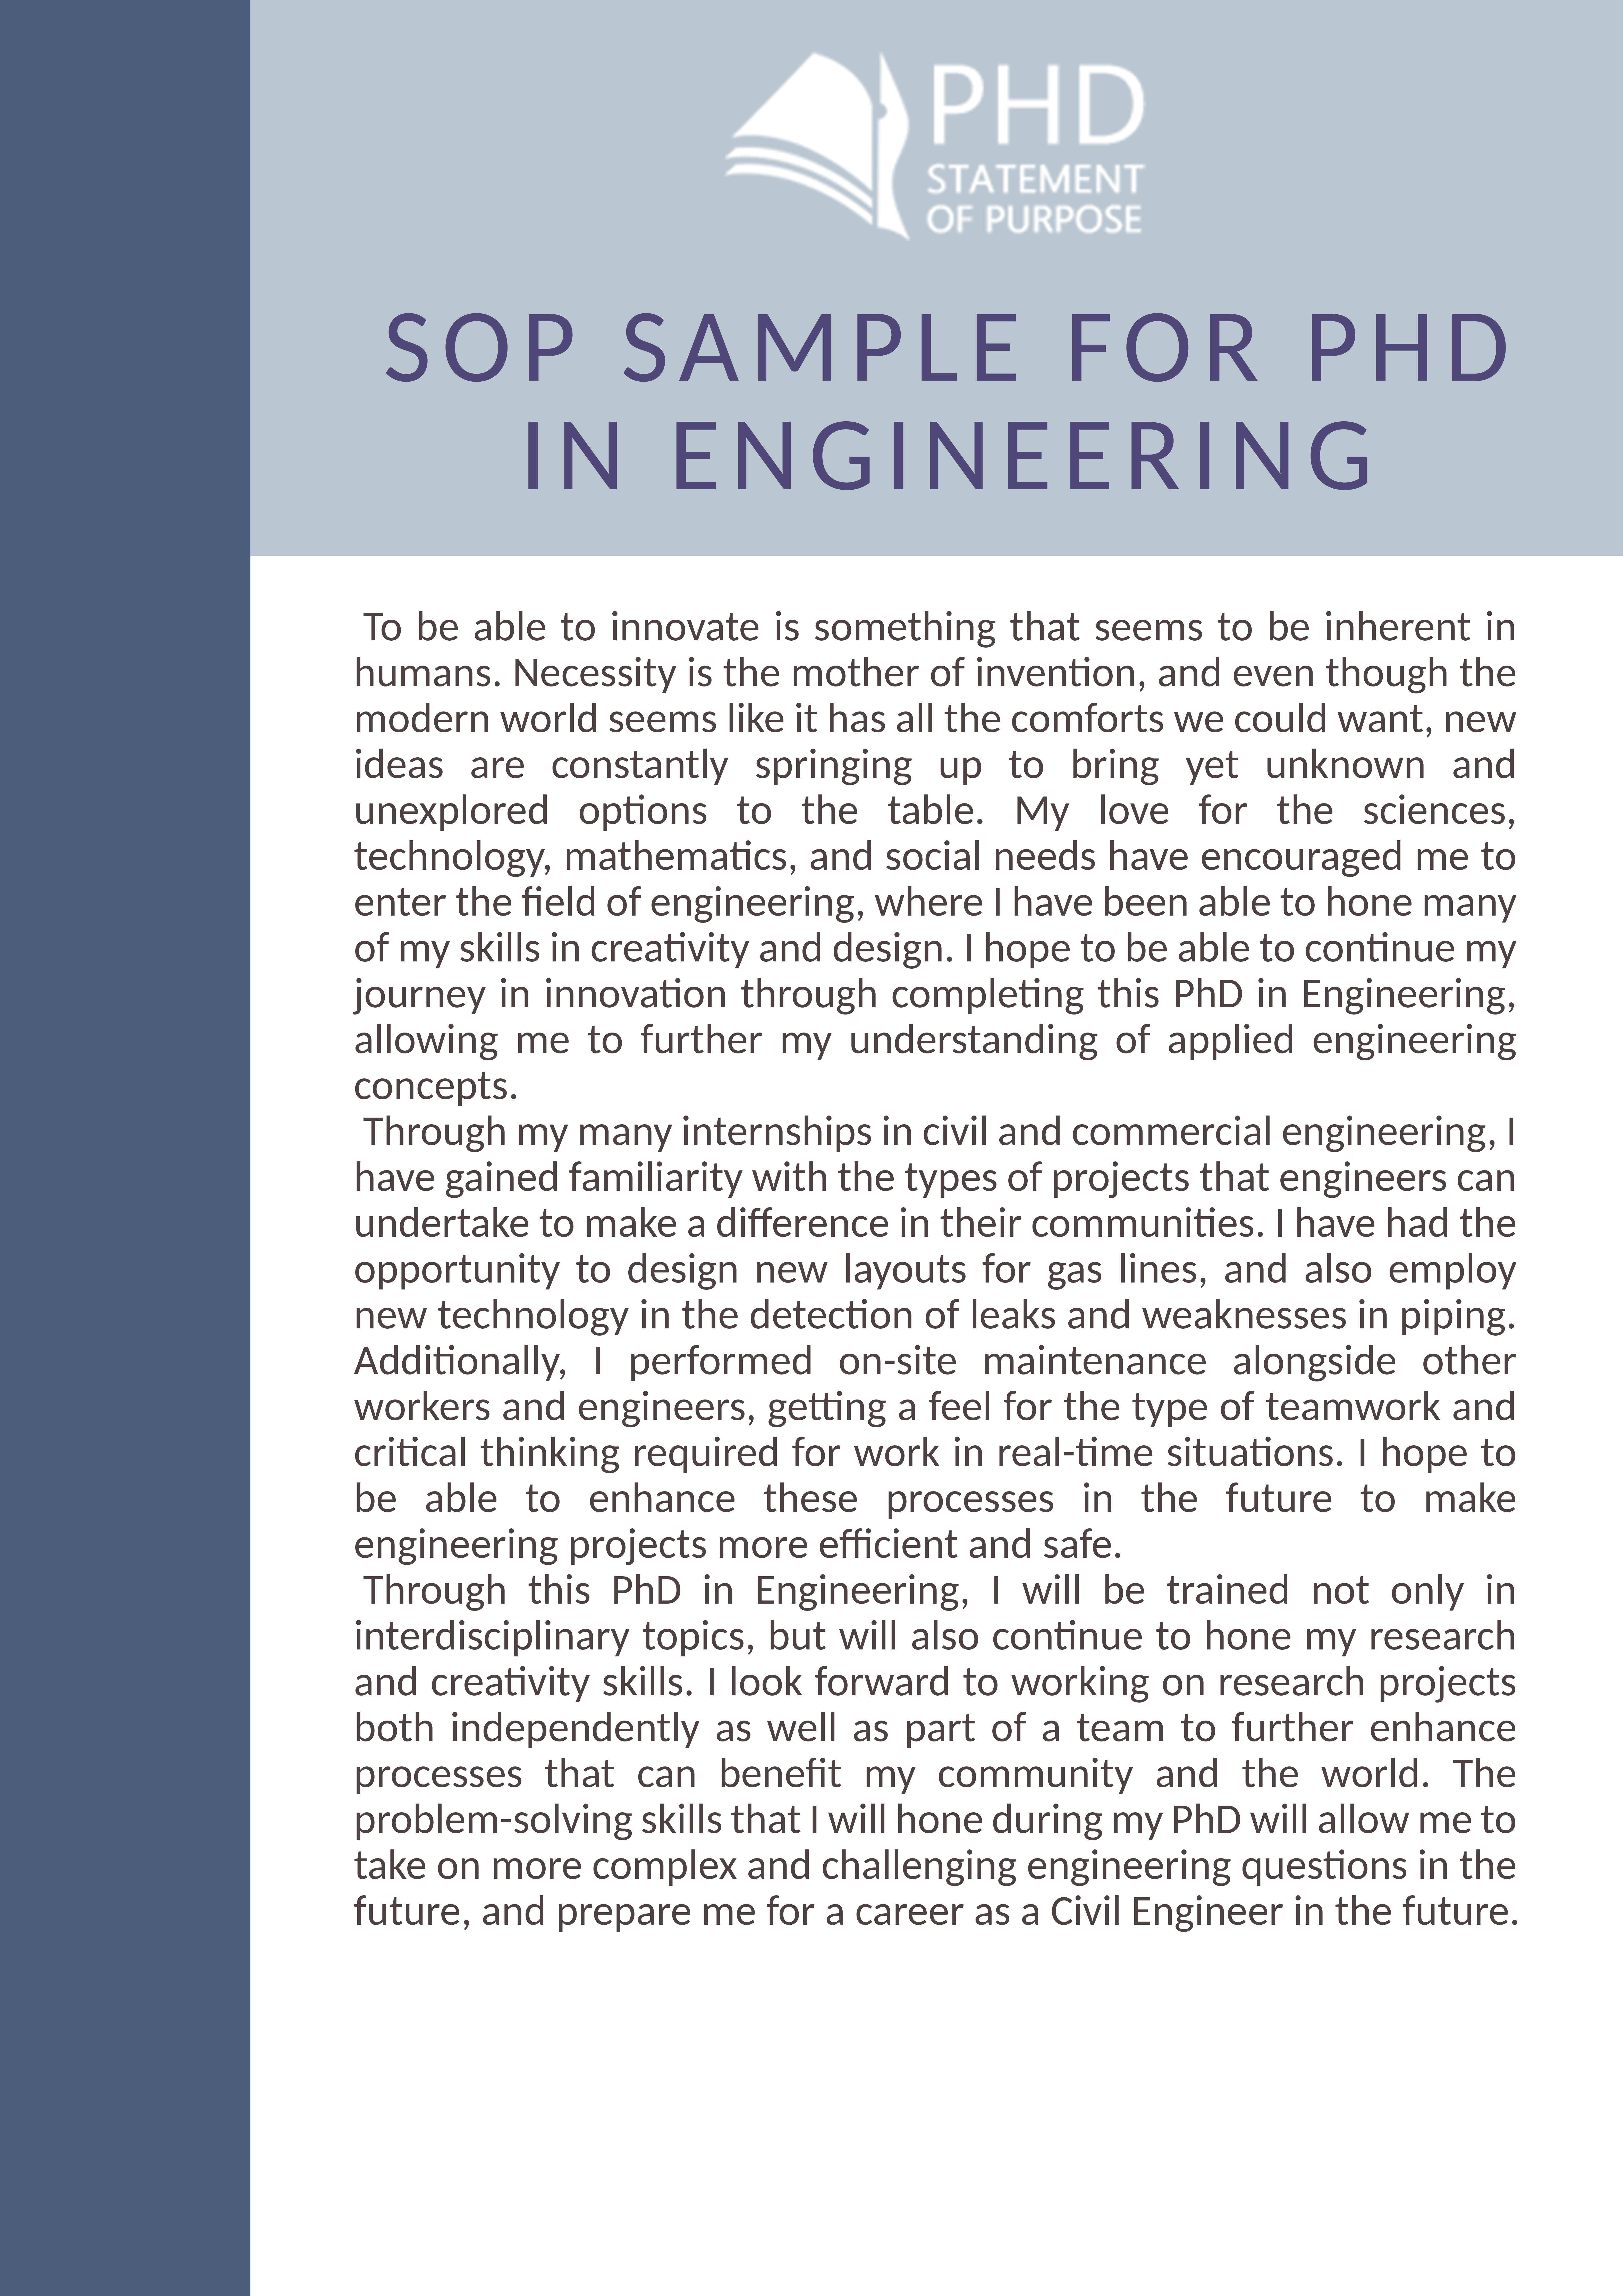 Check this SOP sample for PhD in engineering and learn how